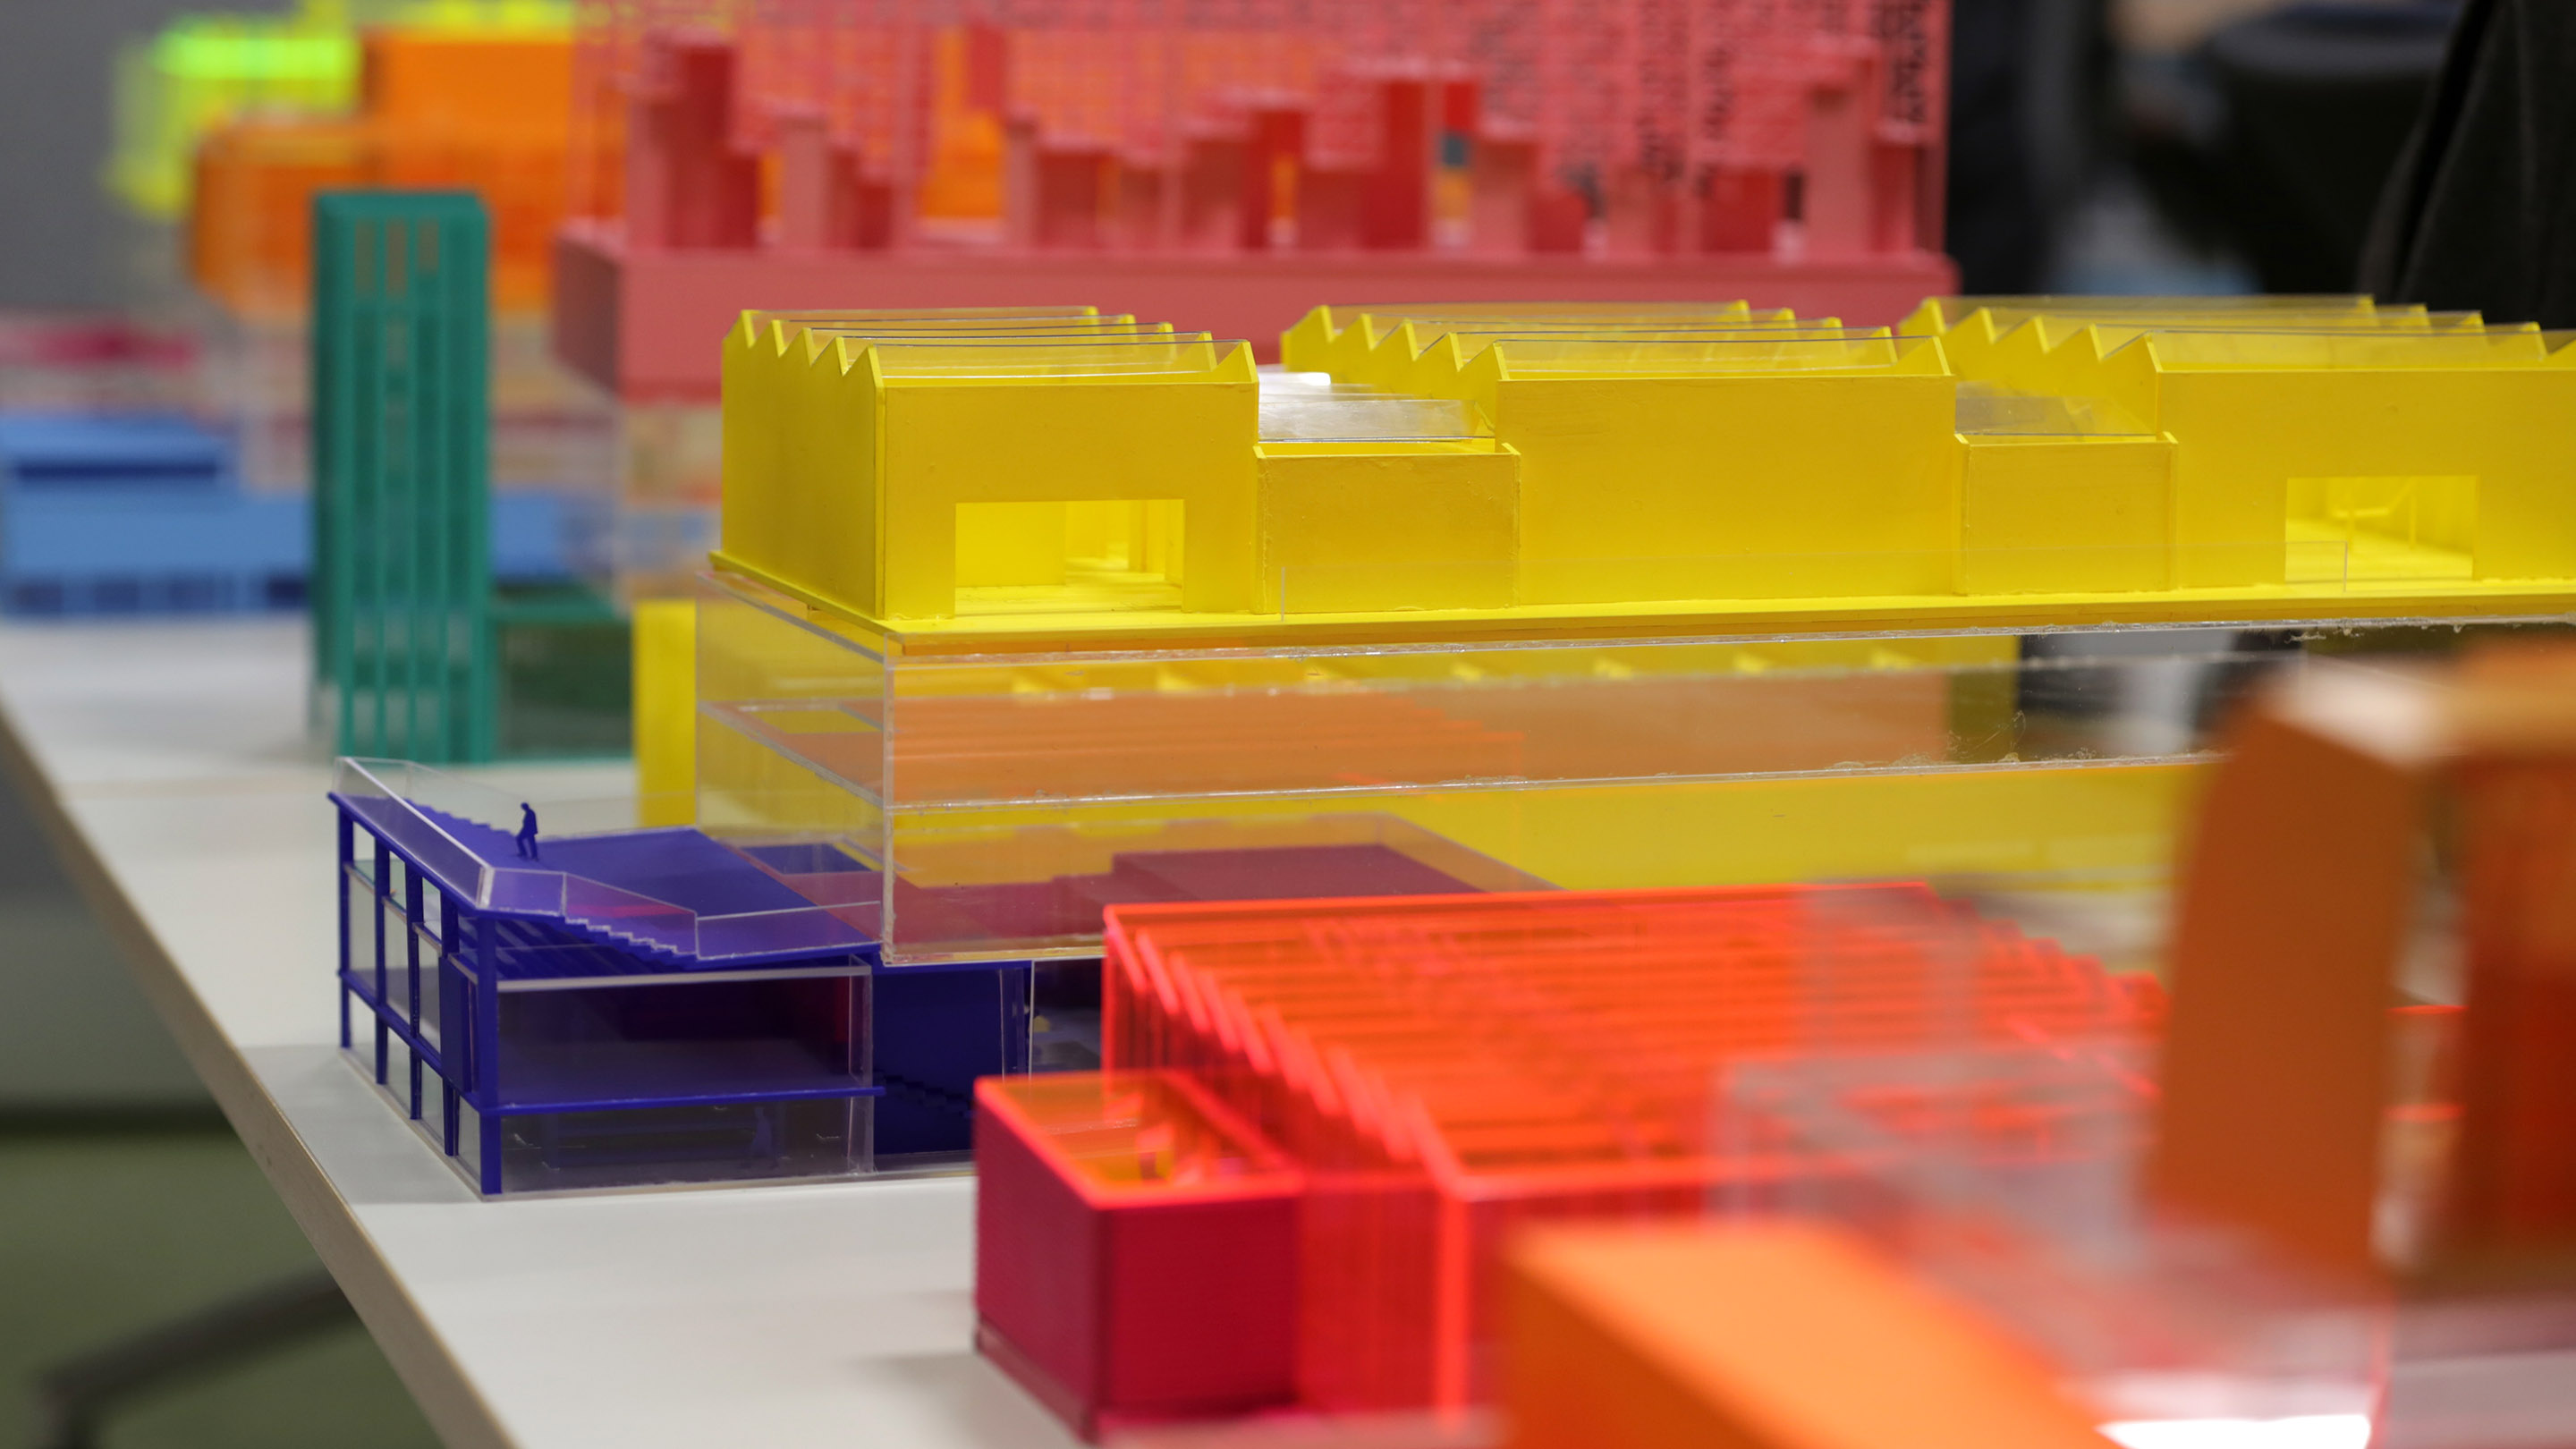 An architectural model made from coloured perspex